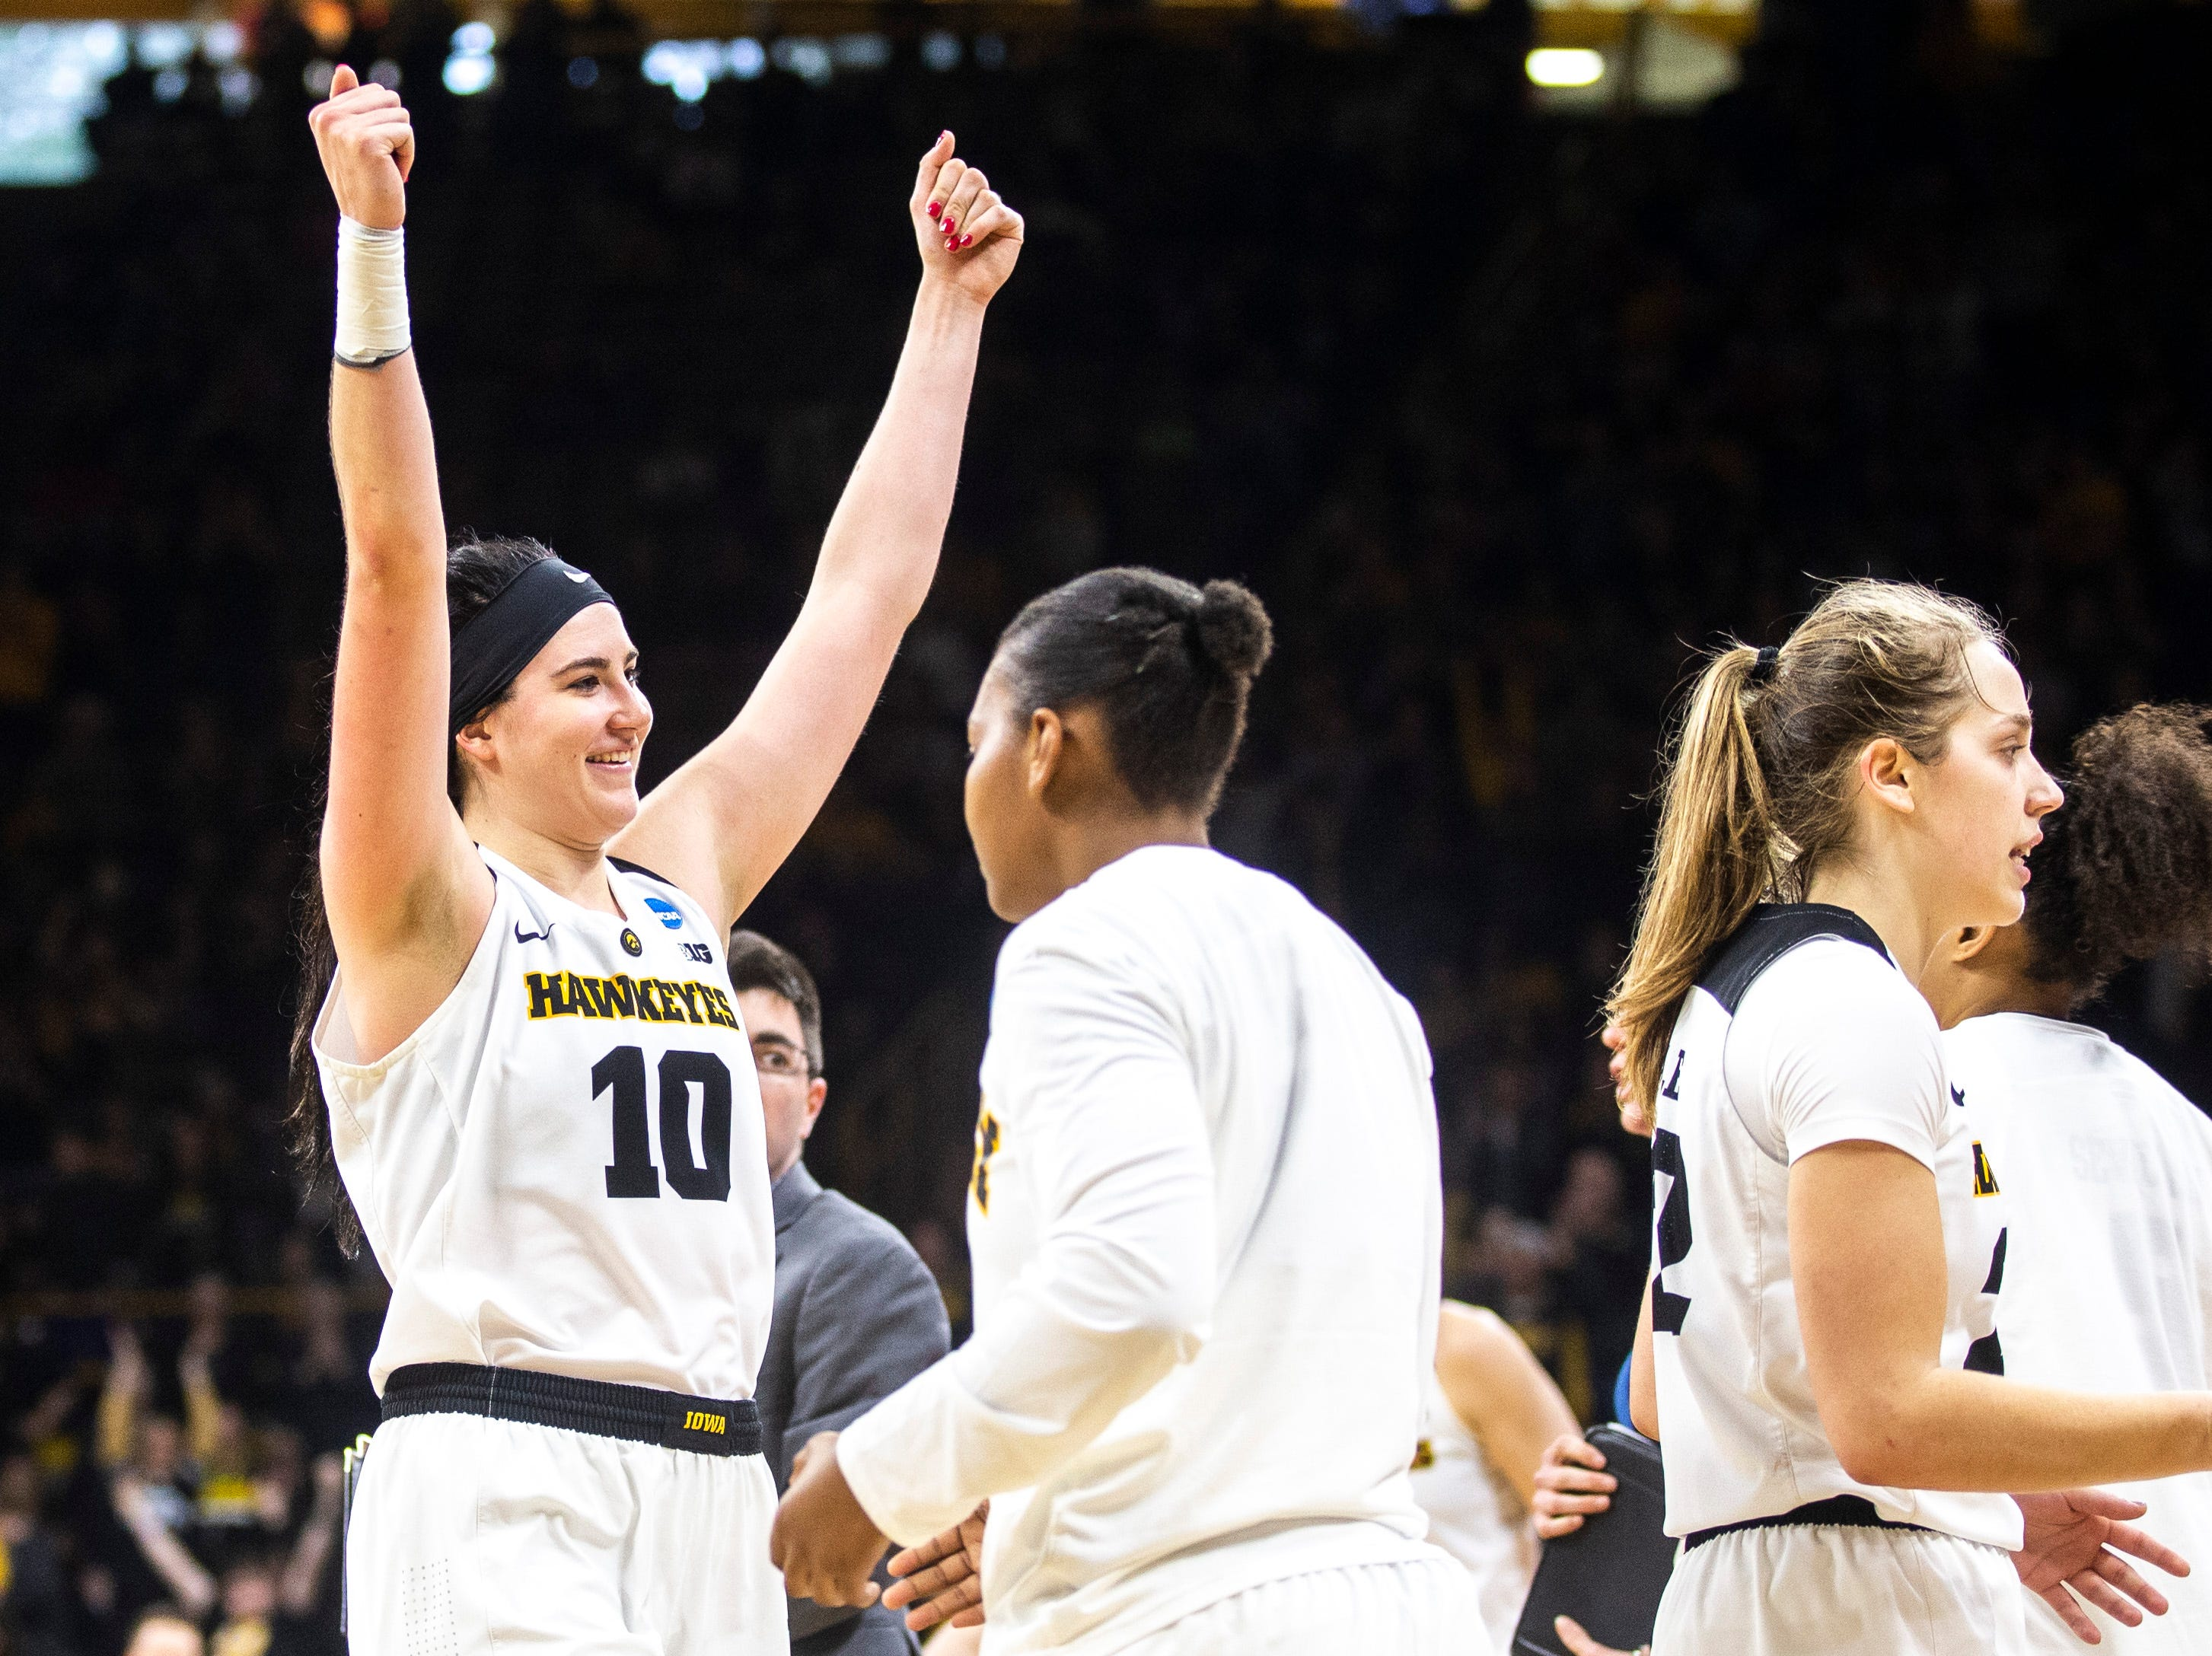 Iowa center Megan Gustafson (10) celebrates heading into a timeout during a NCAA women's basketball tournament second-round game, Sunday, March 24, 2019, at Carver-Hawkeye Arena in Iowa City, Iowa.